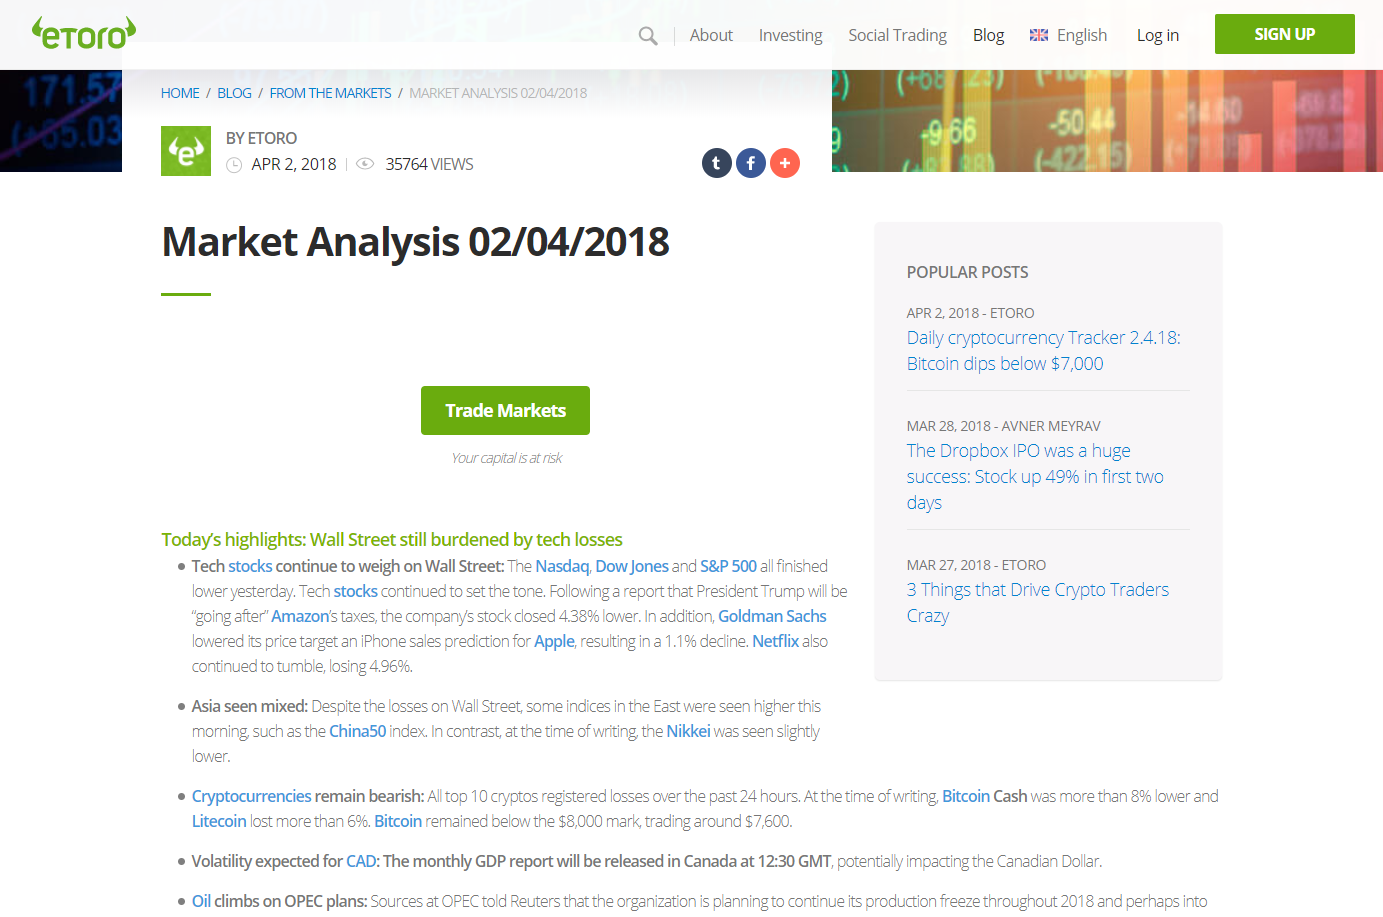 eToro market analysis